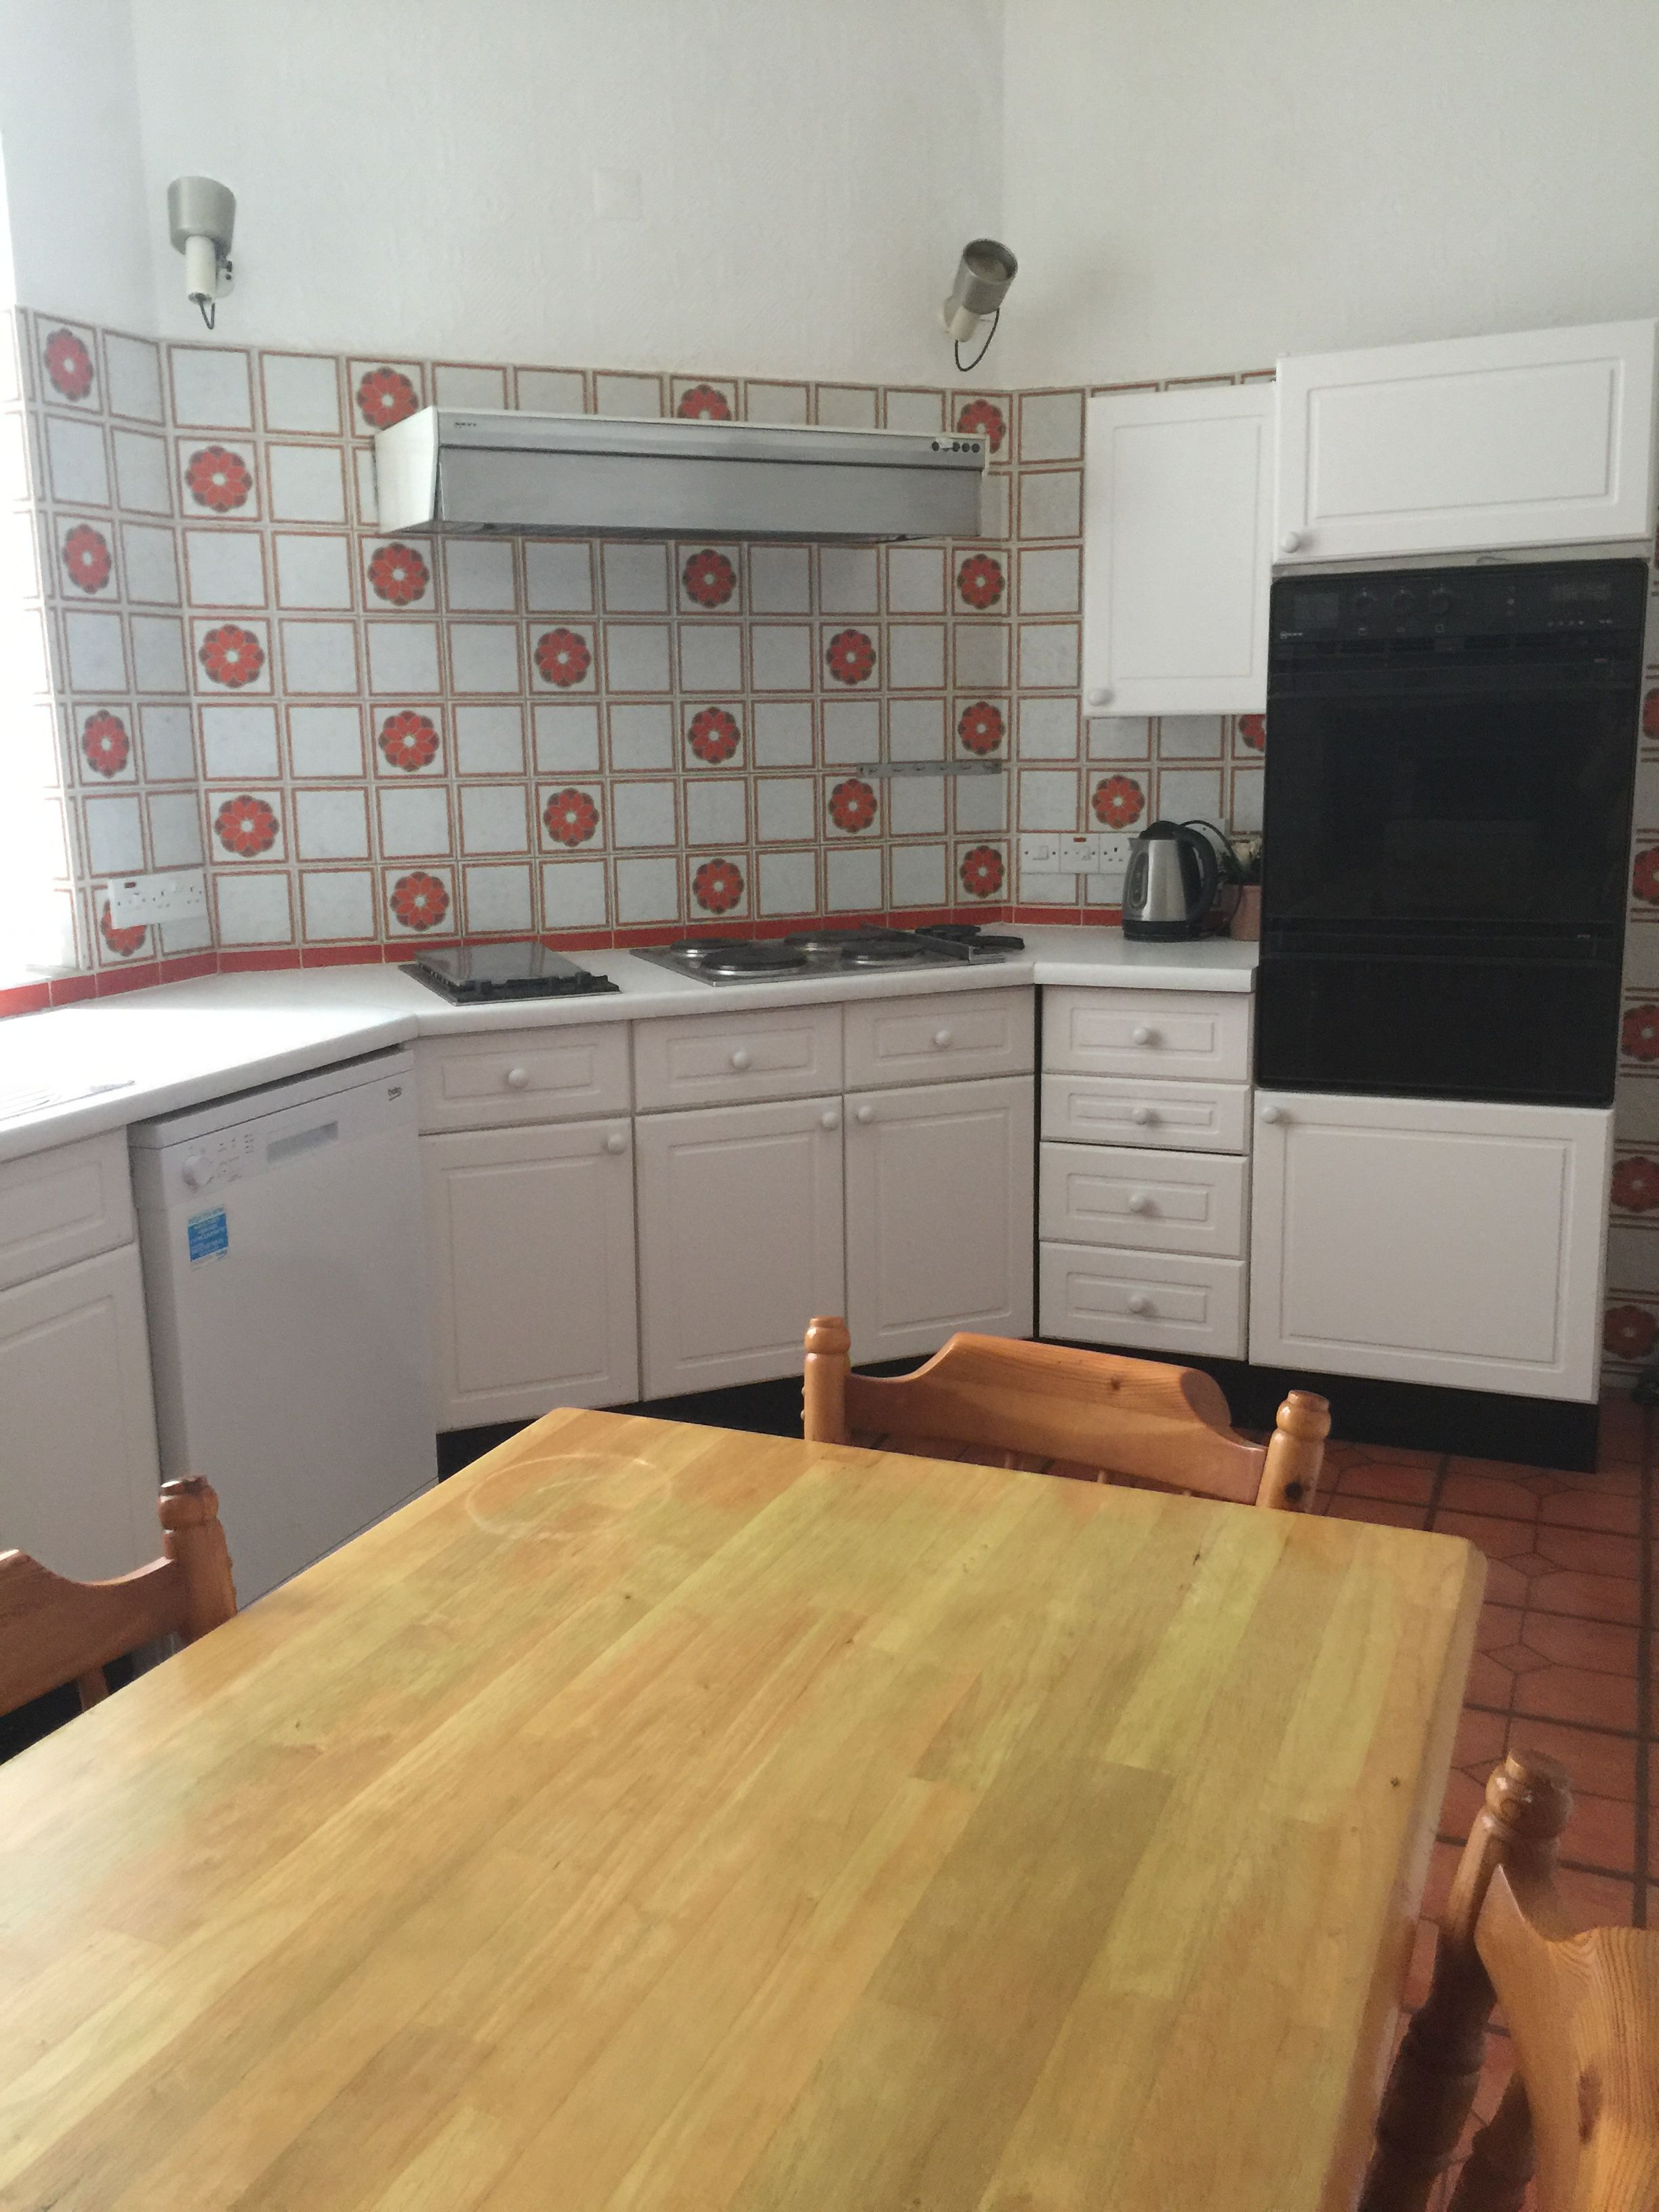 A Fabulous 1970 S Refurbed Kitchen Within A Beautiful Mansion Apartment Built In 1899 However Now We Are In 2 In 2020 Kitchen Remodel Update Kitchen Cabinets Kitchen